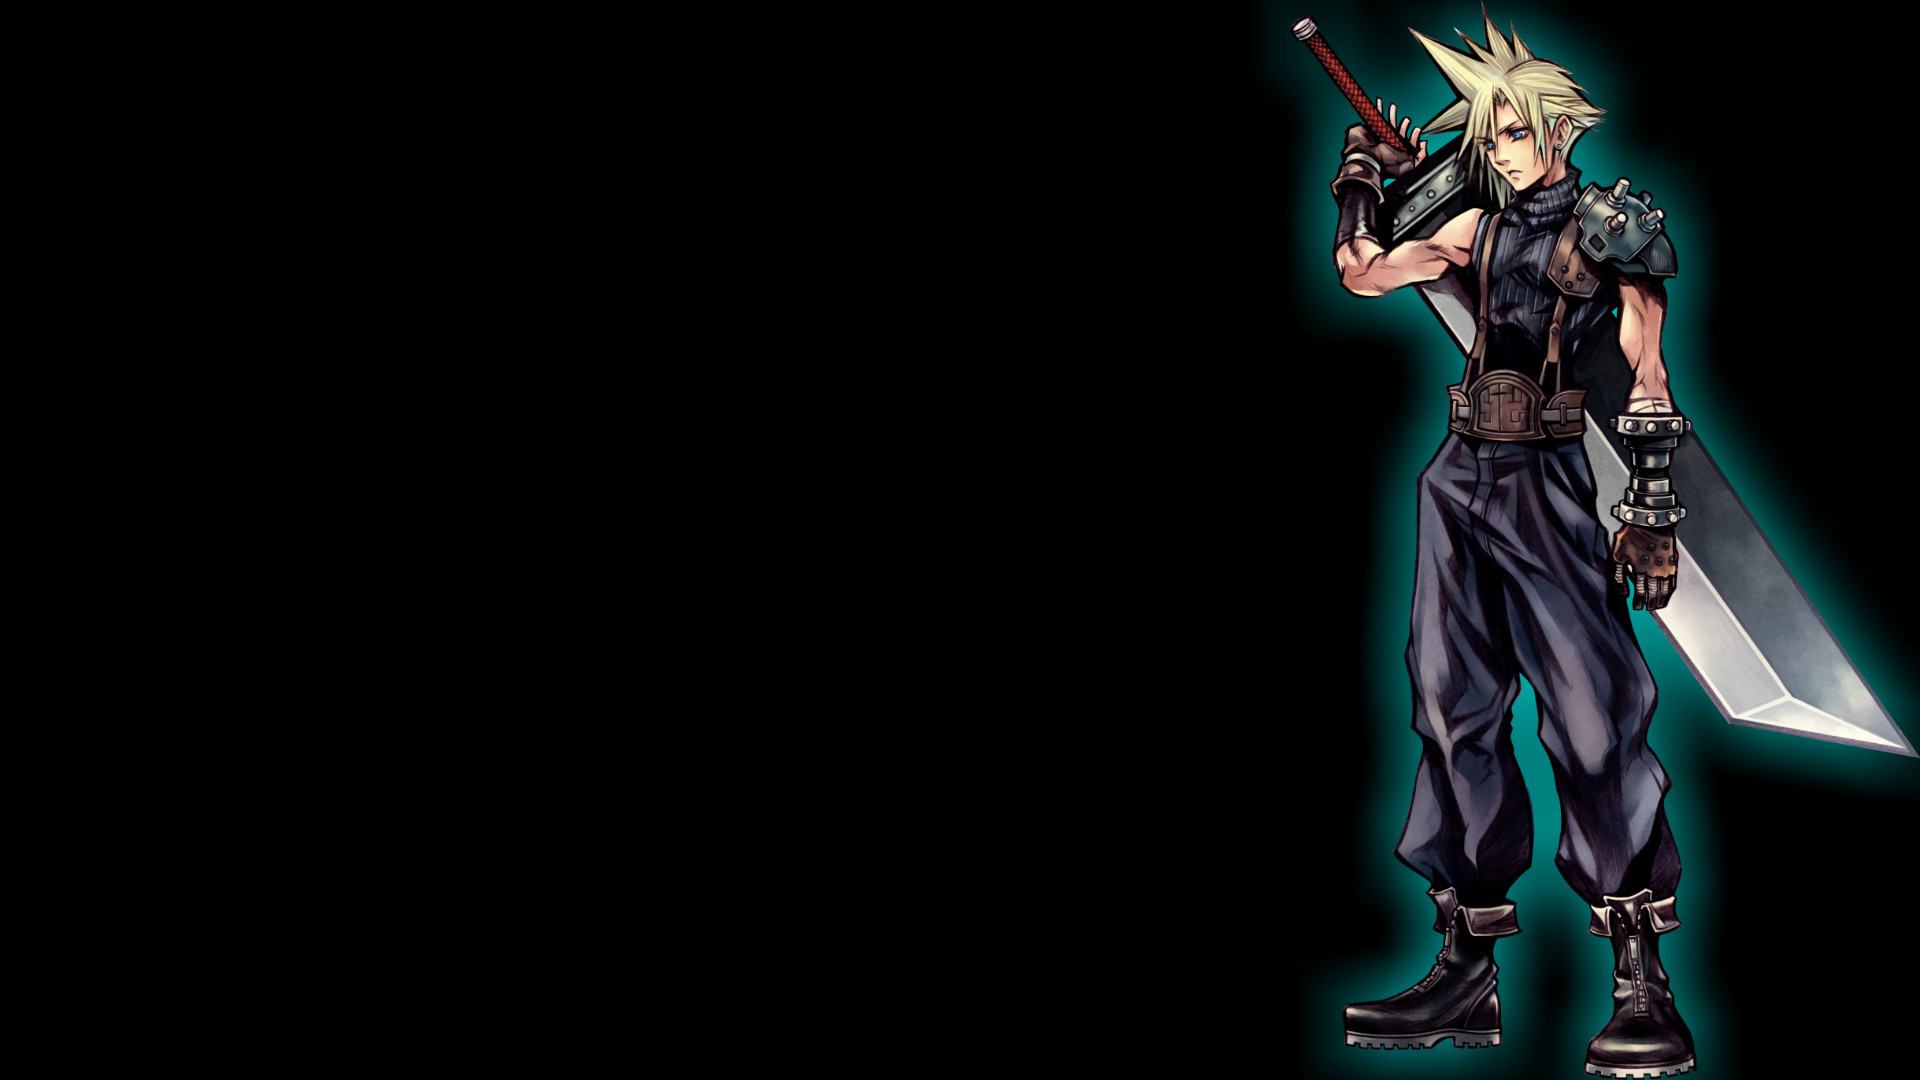 1920x1080 Final Fantasy VII Wallpapers Wallpaper 1600×1000 Ff7 Wallpapers (45  Wallpapers) | Adorable